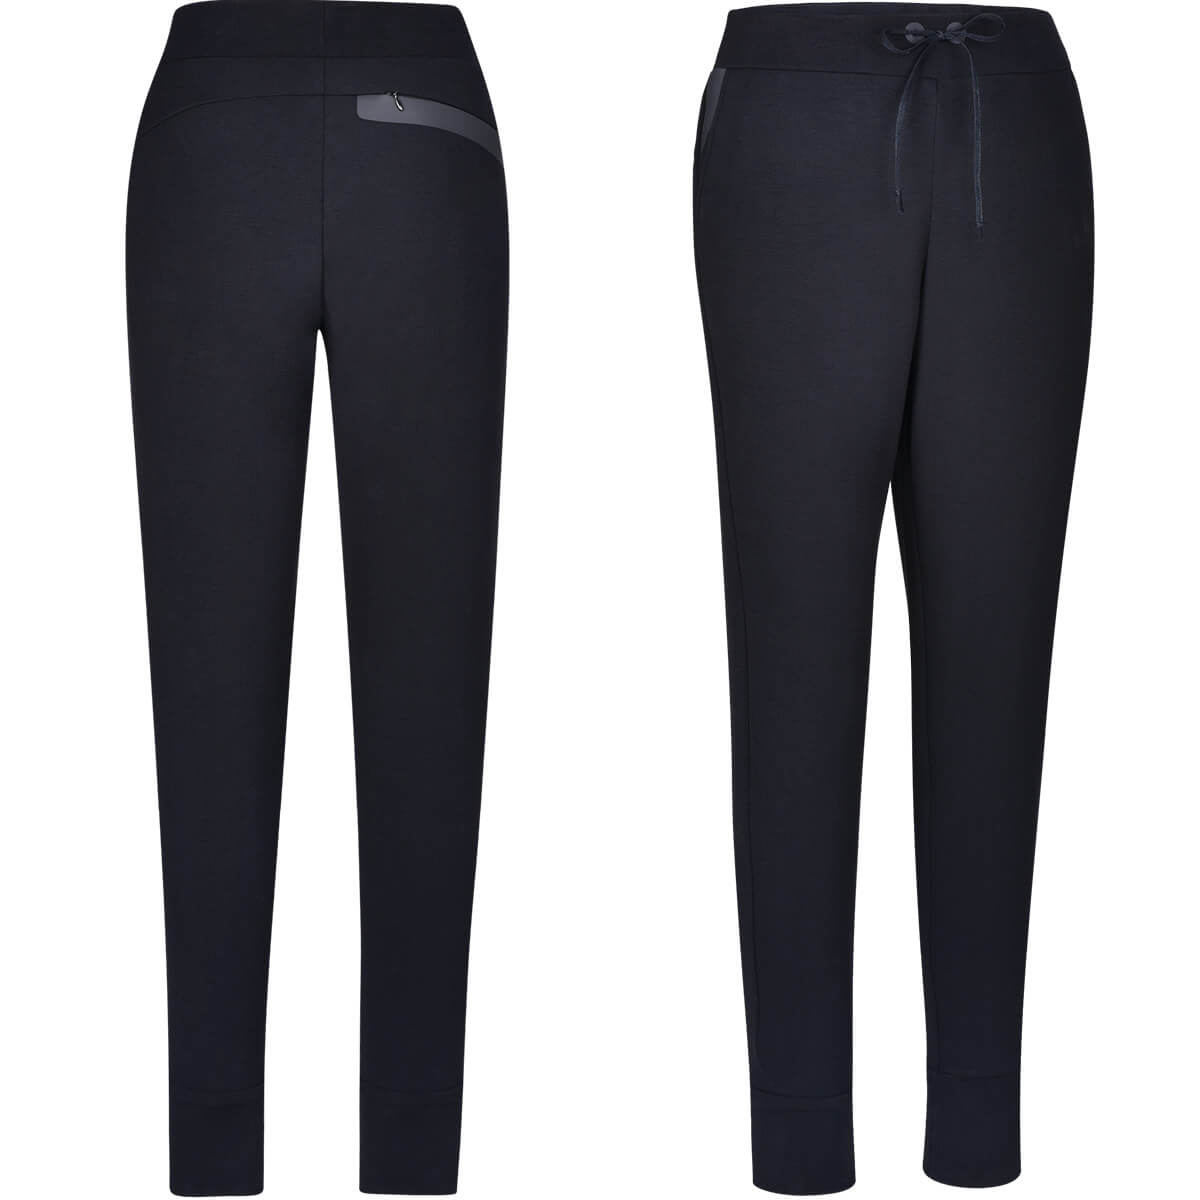 jogger pant back and side